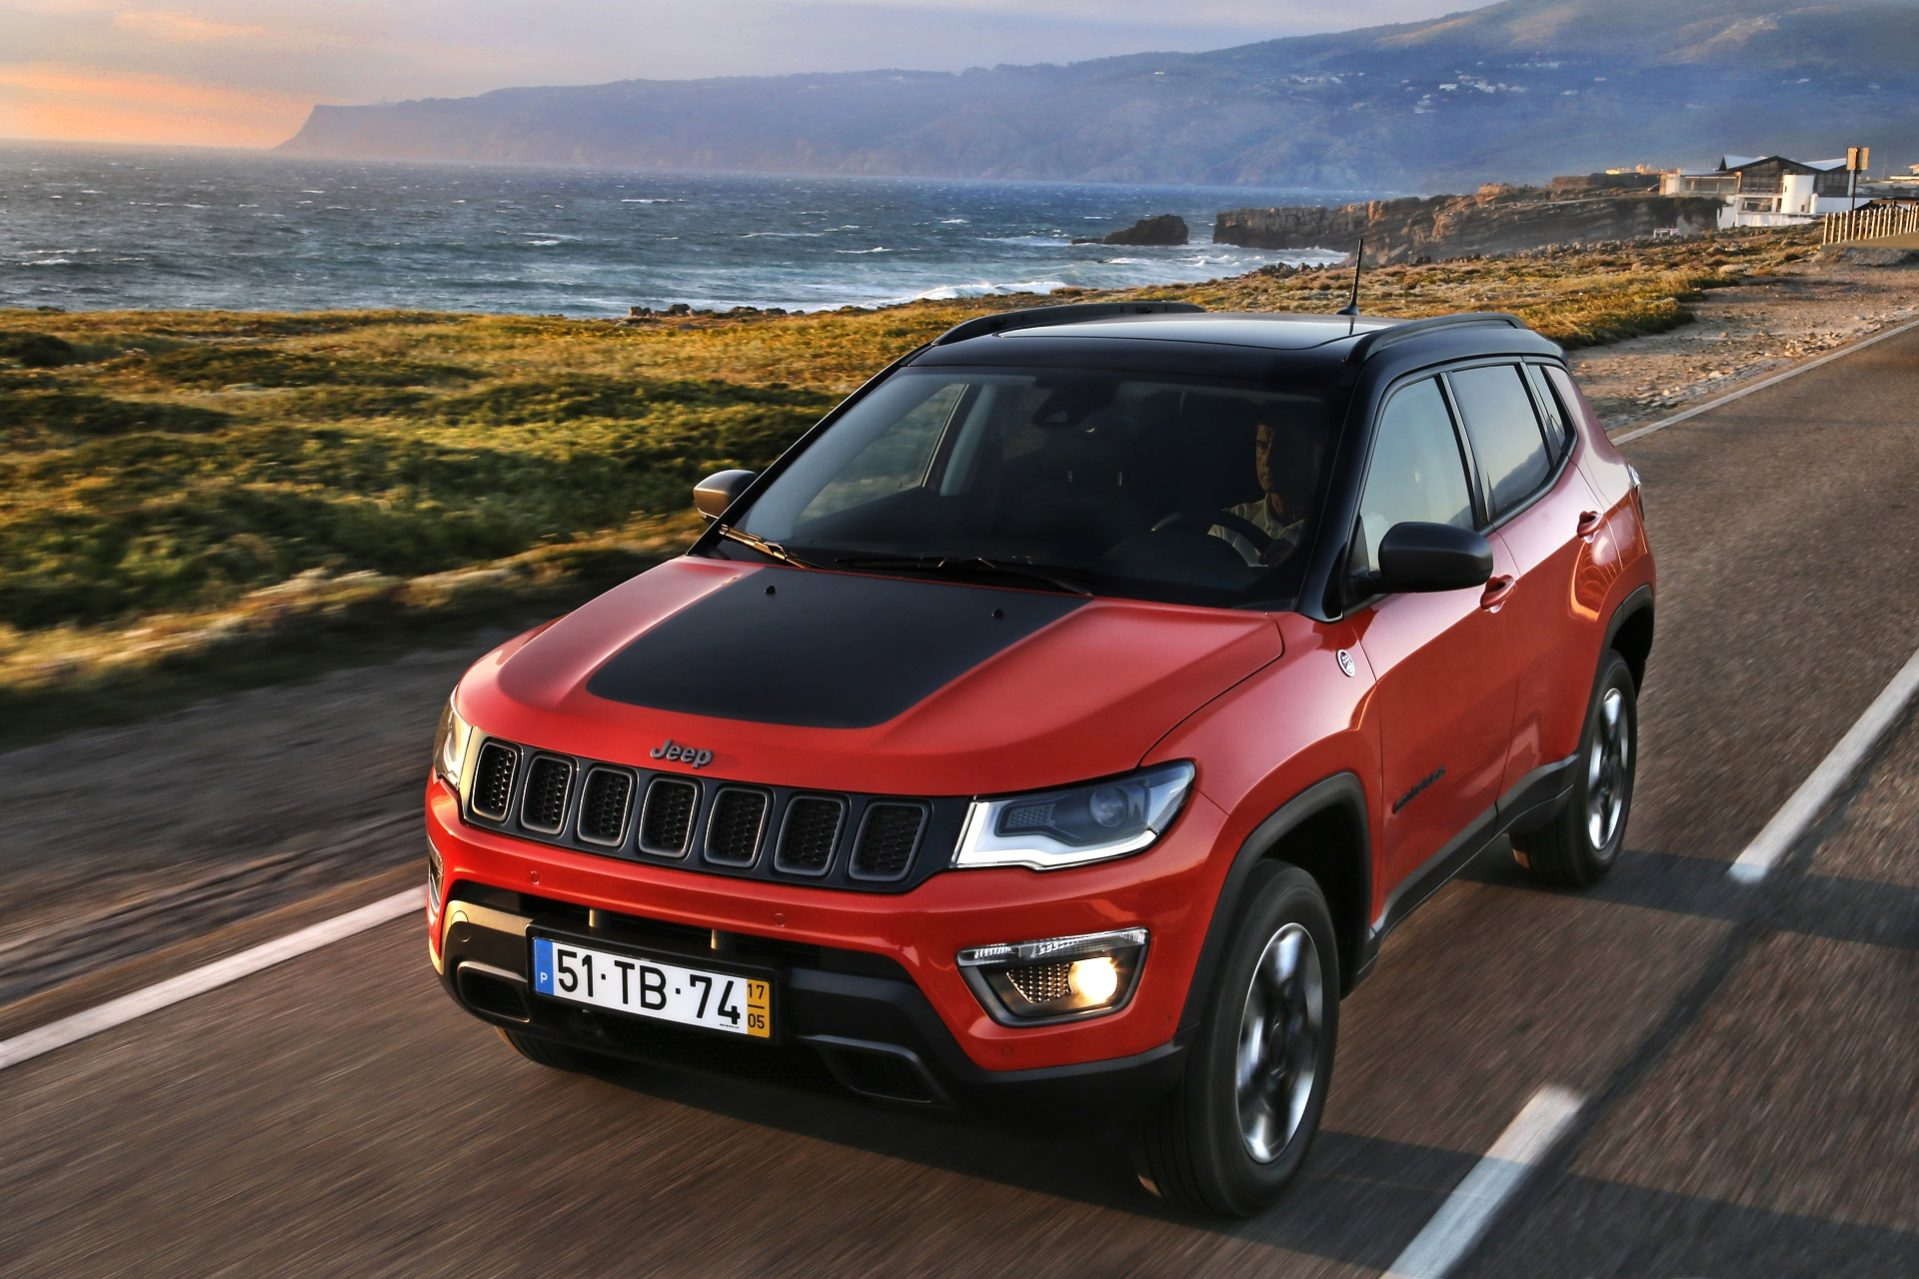 Jeep Compass Trailhawk Launched At Rs 26.8 Lakh